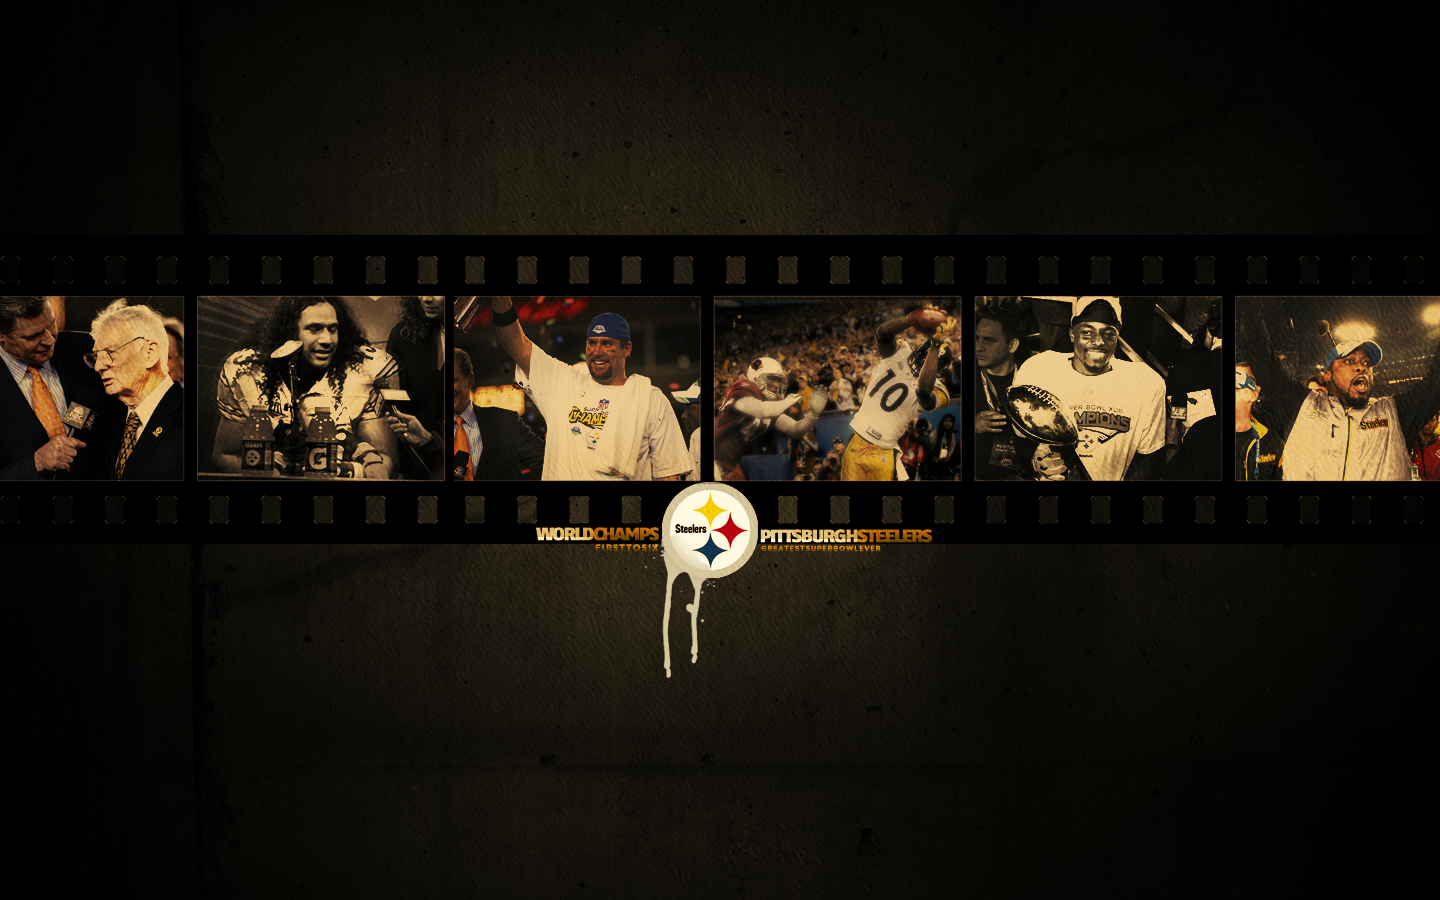 Steelers wallpaper wallpaper Pittsburgh Steelers wallpapers 1440x900